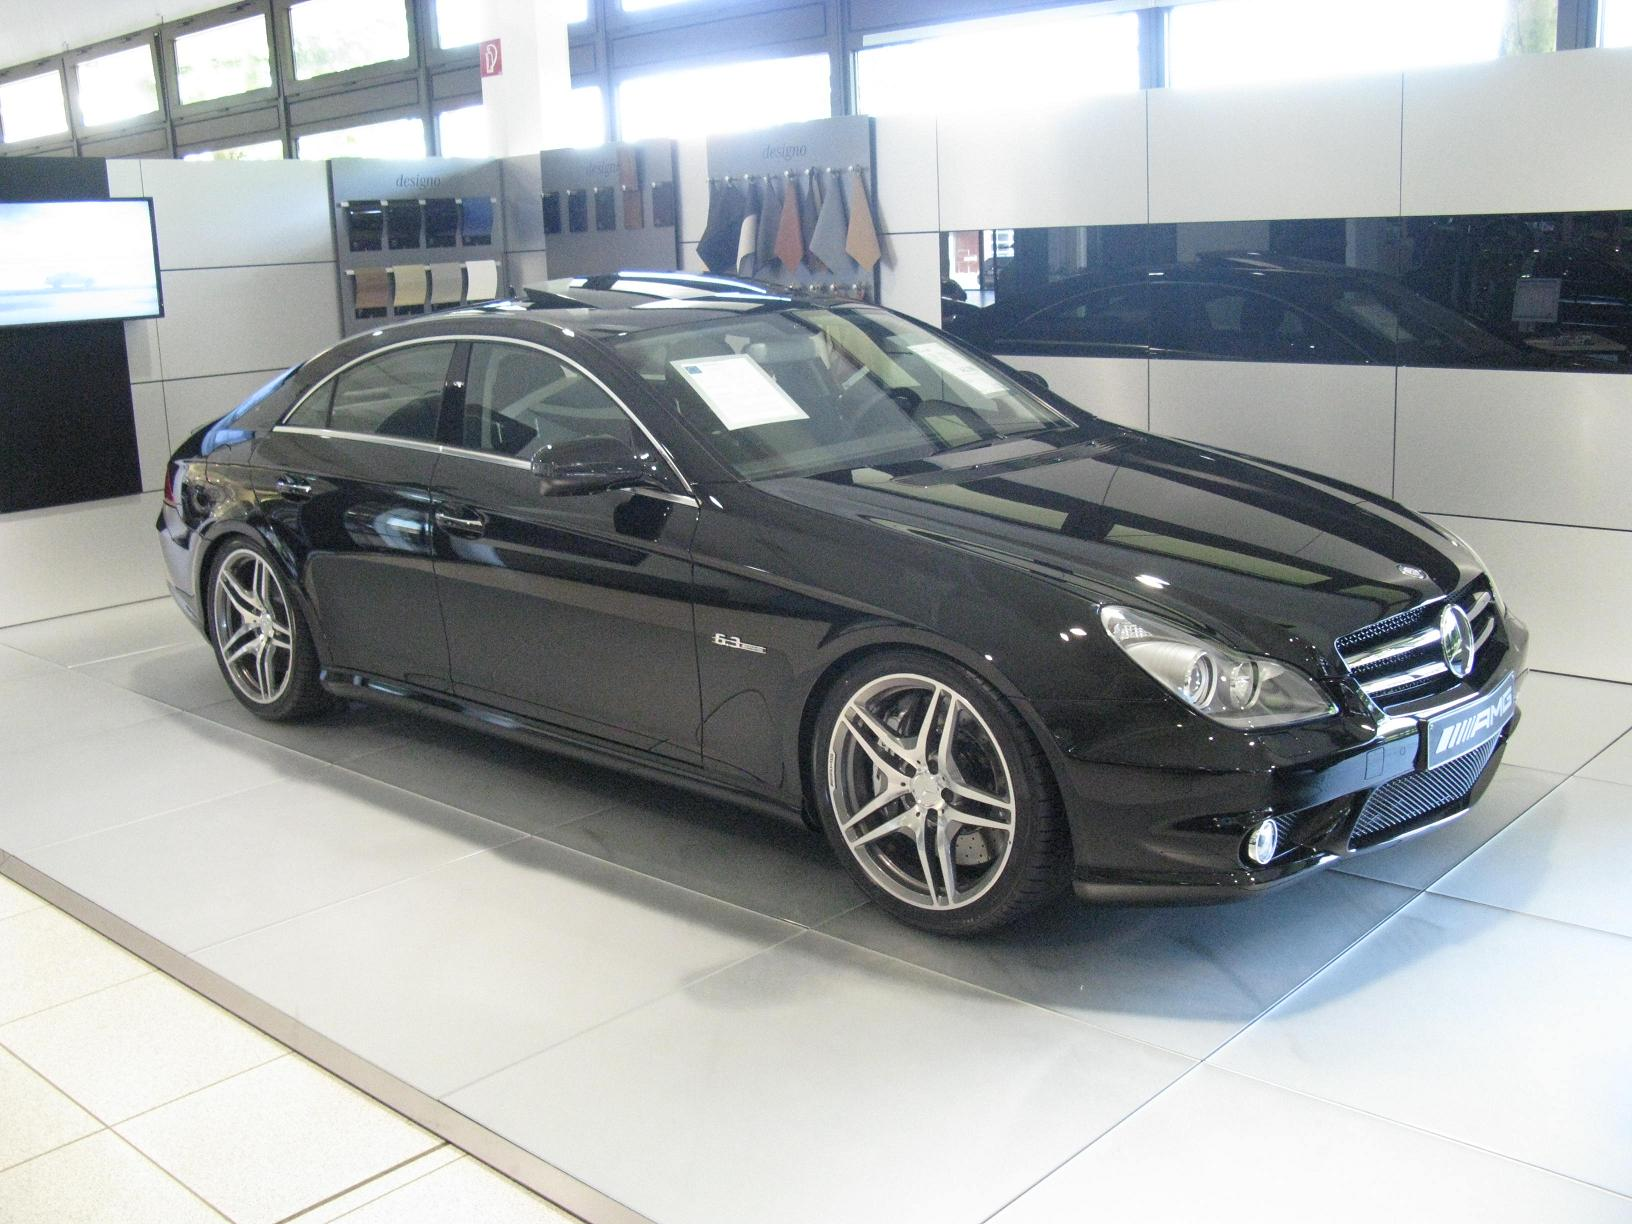 File Mercedes Benz CLS 63 AMG Wikimedia mons